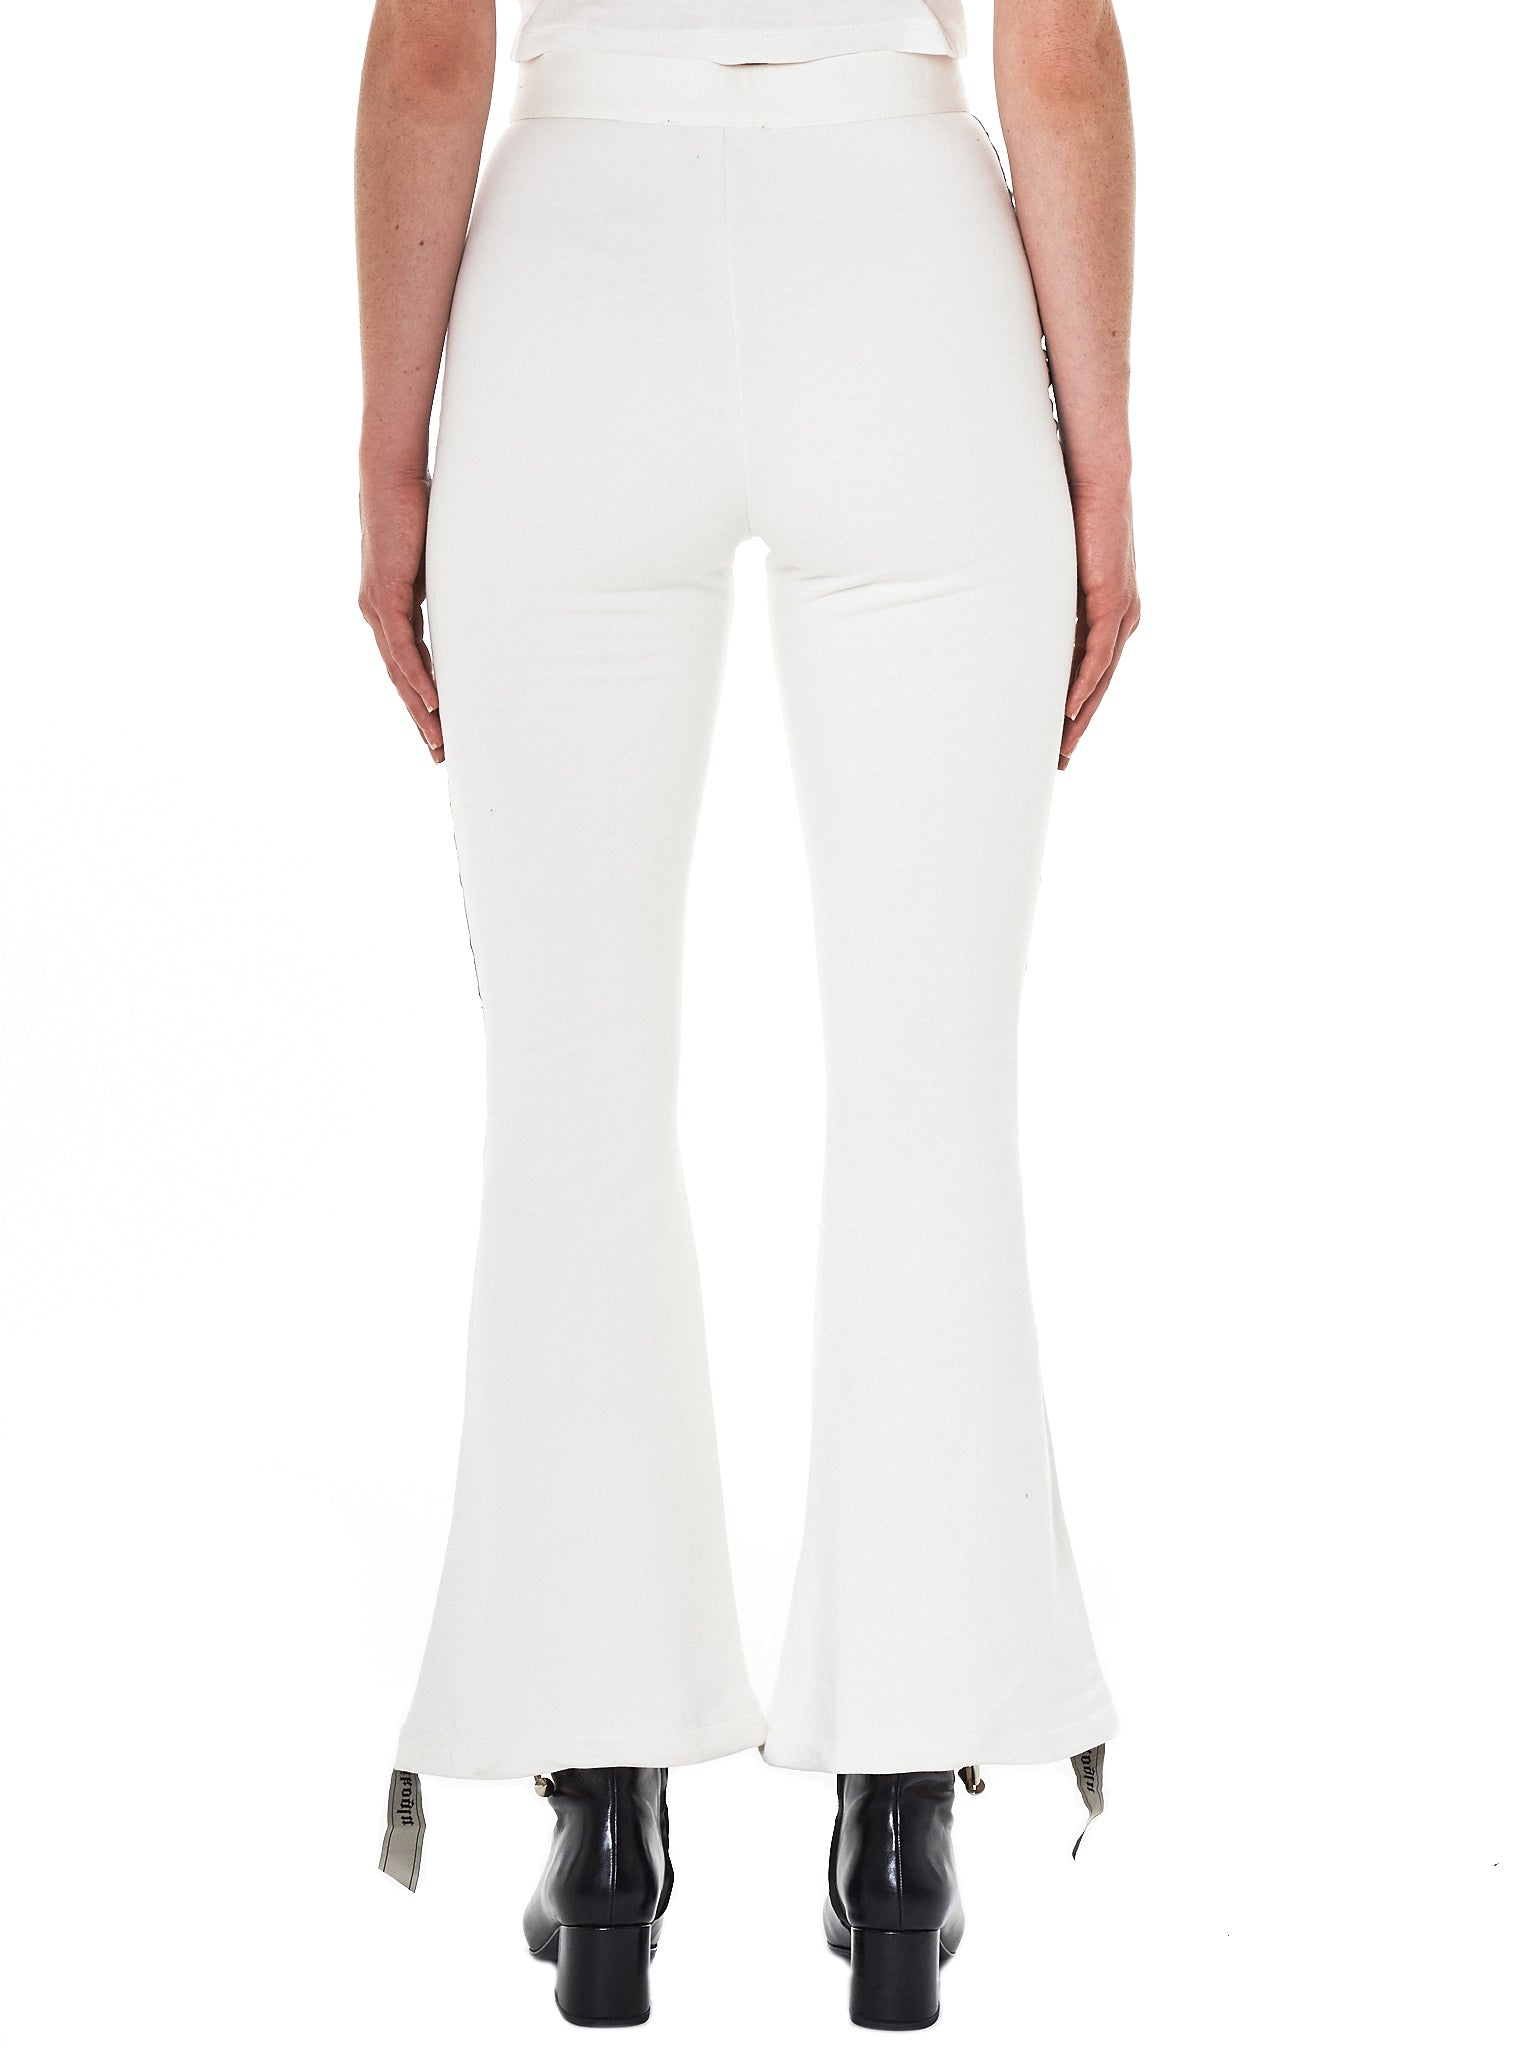 Dilara Findikoglu white flared trouser- Hlorenzo back